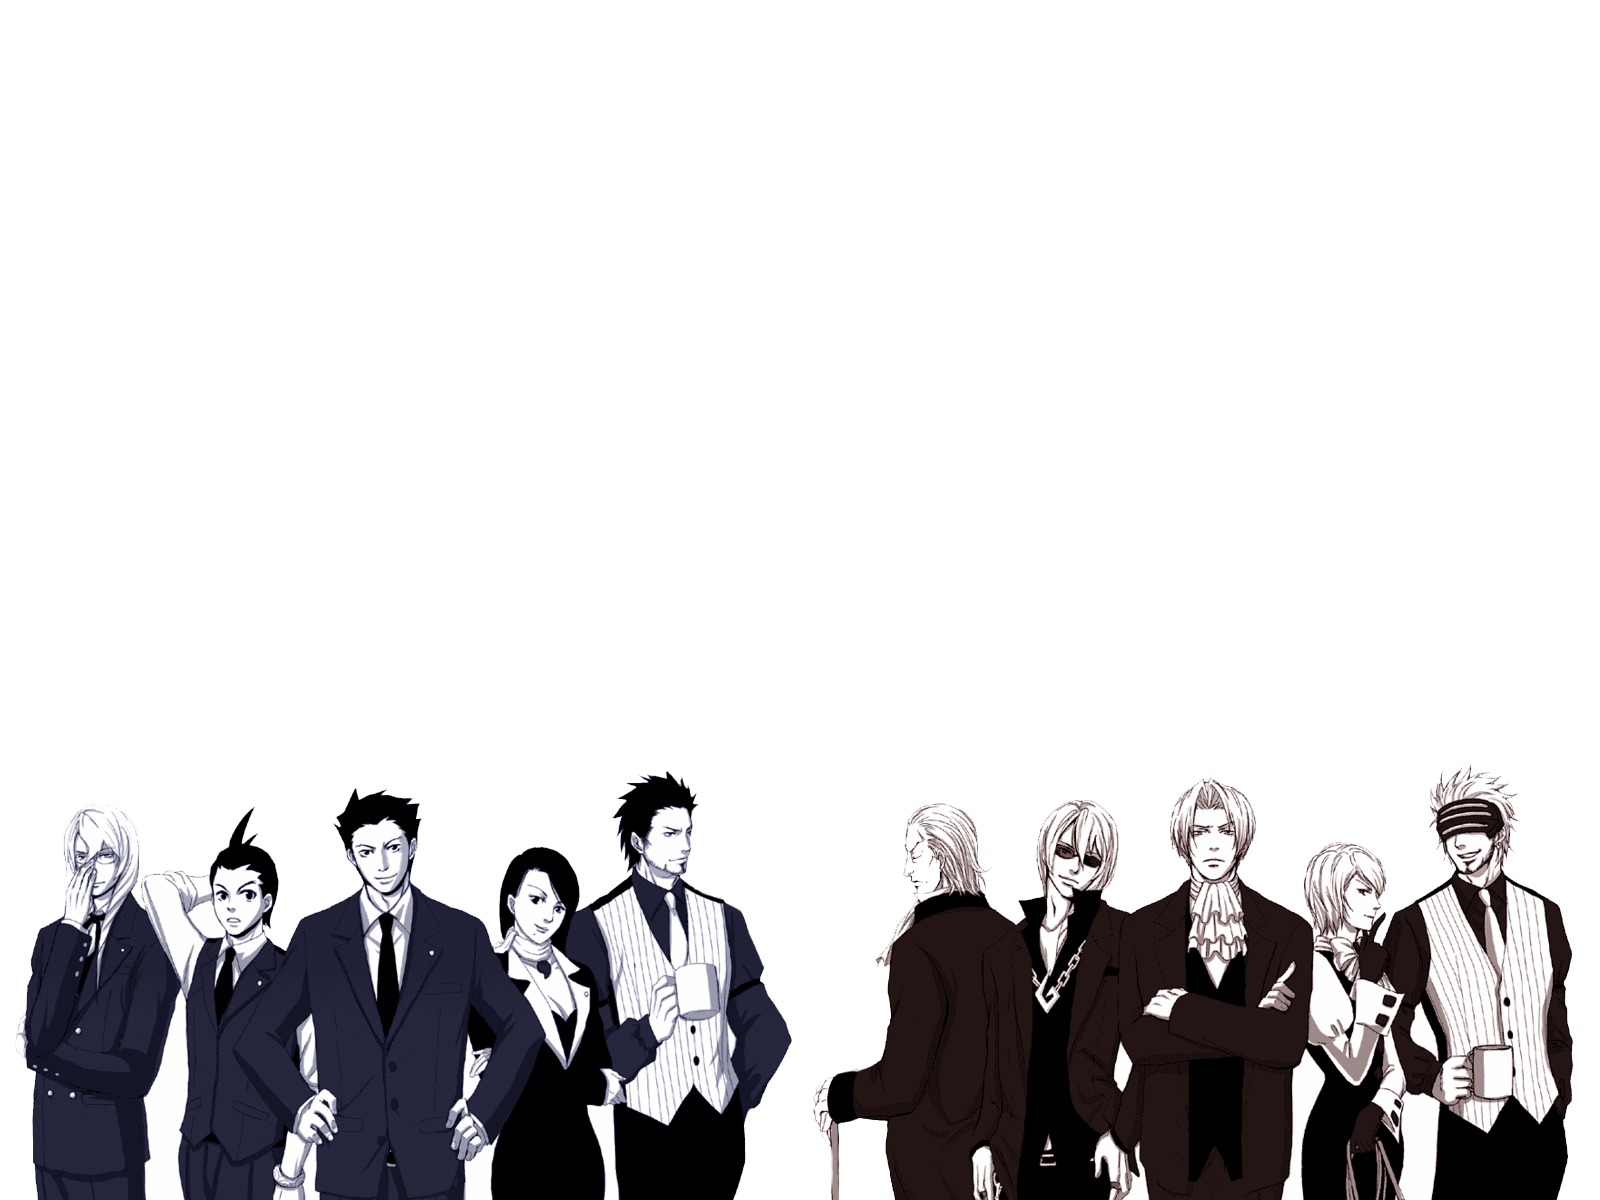 Hd Wallpapers Ace Attorney 900 X 720 132 Kb Png HD Wallpapers 1600x1200